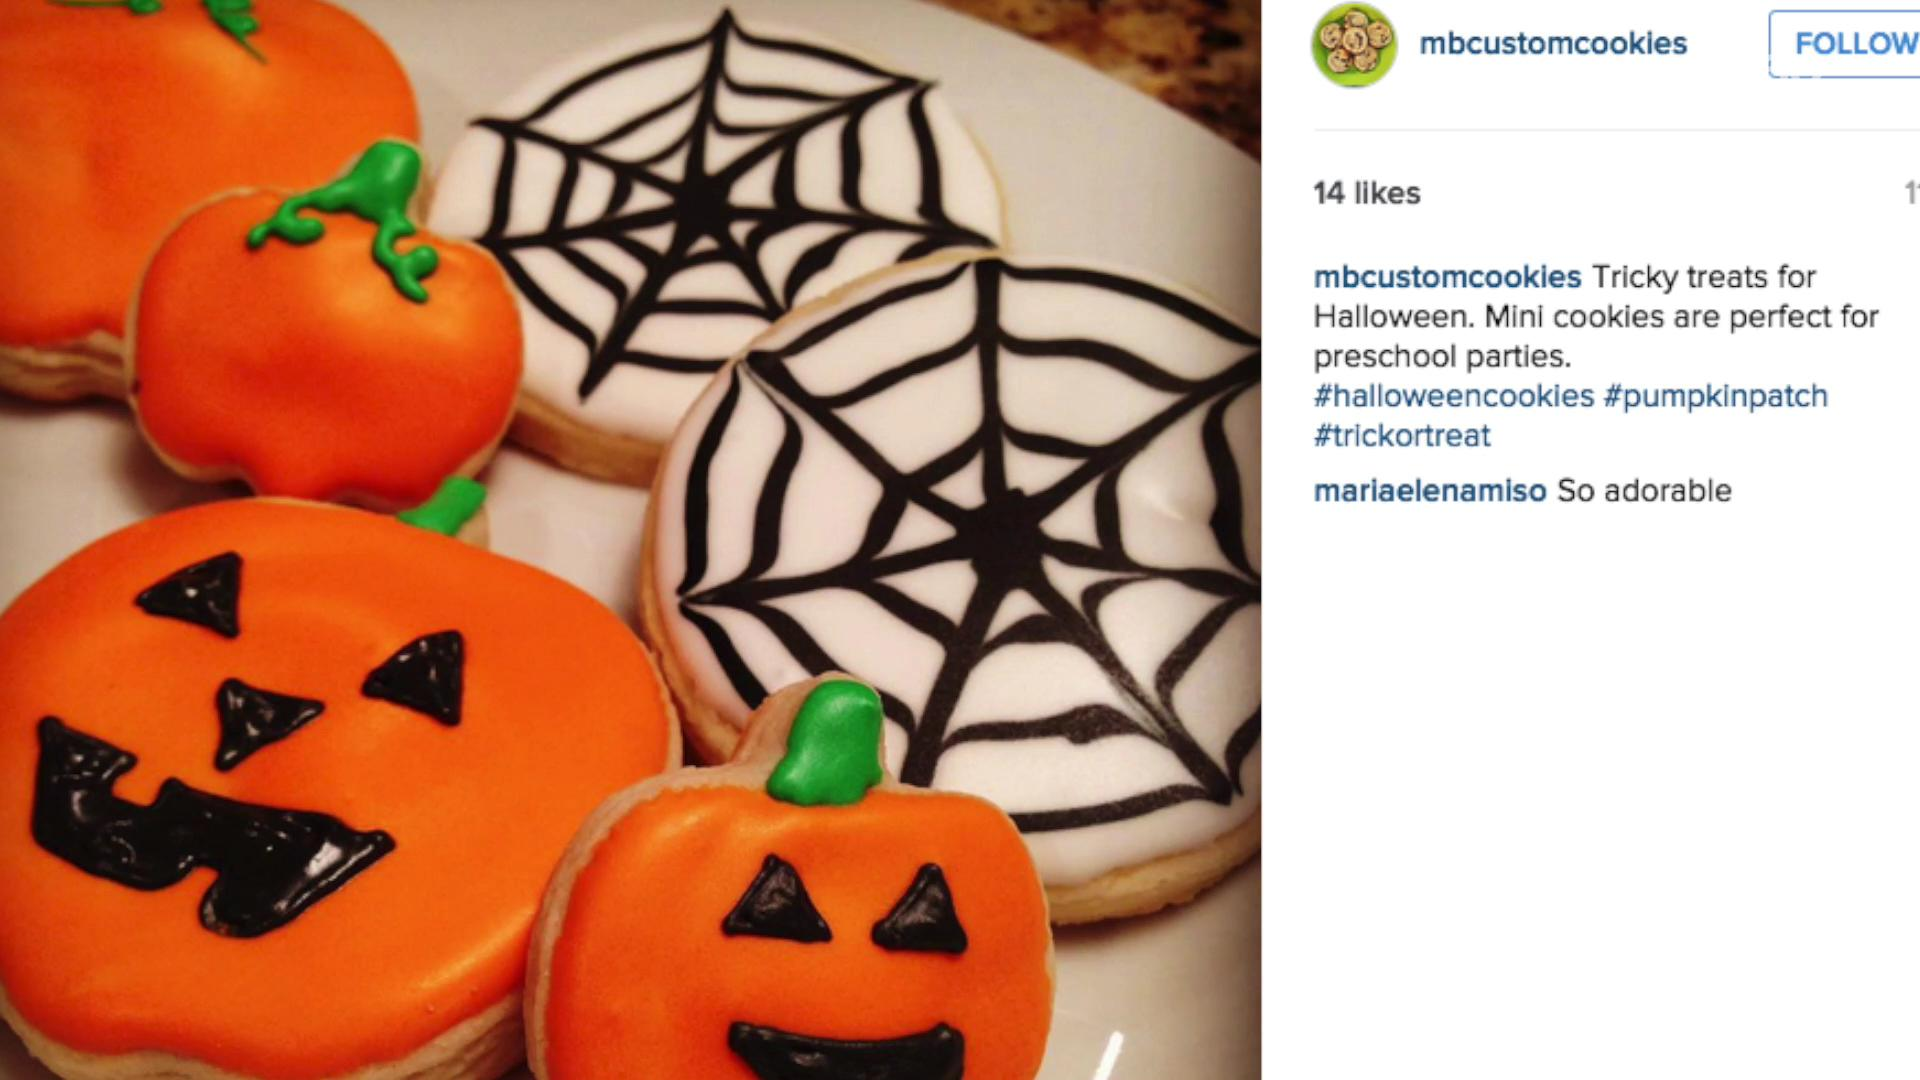 Festive Halloween Cookies That Are Easy to Make